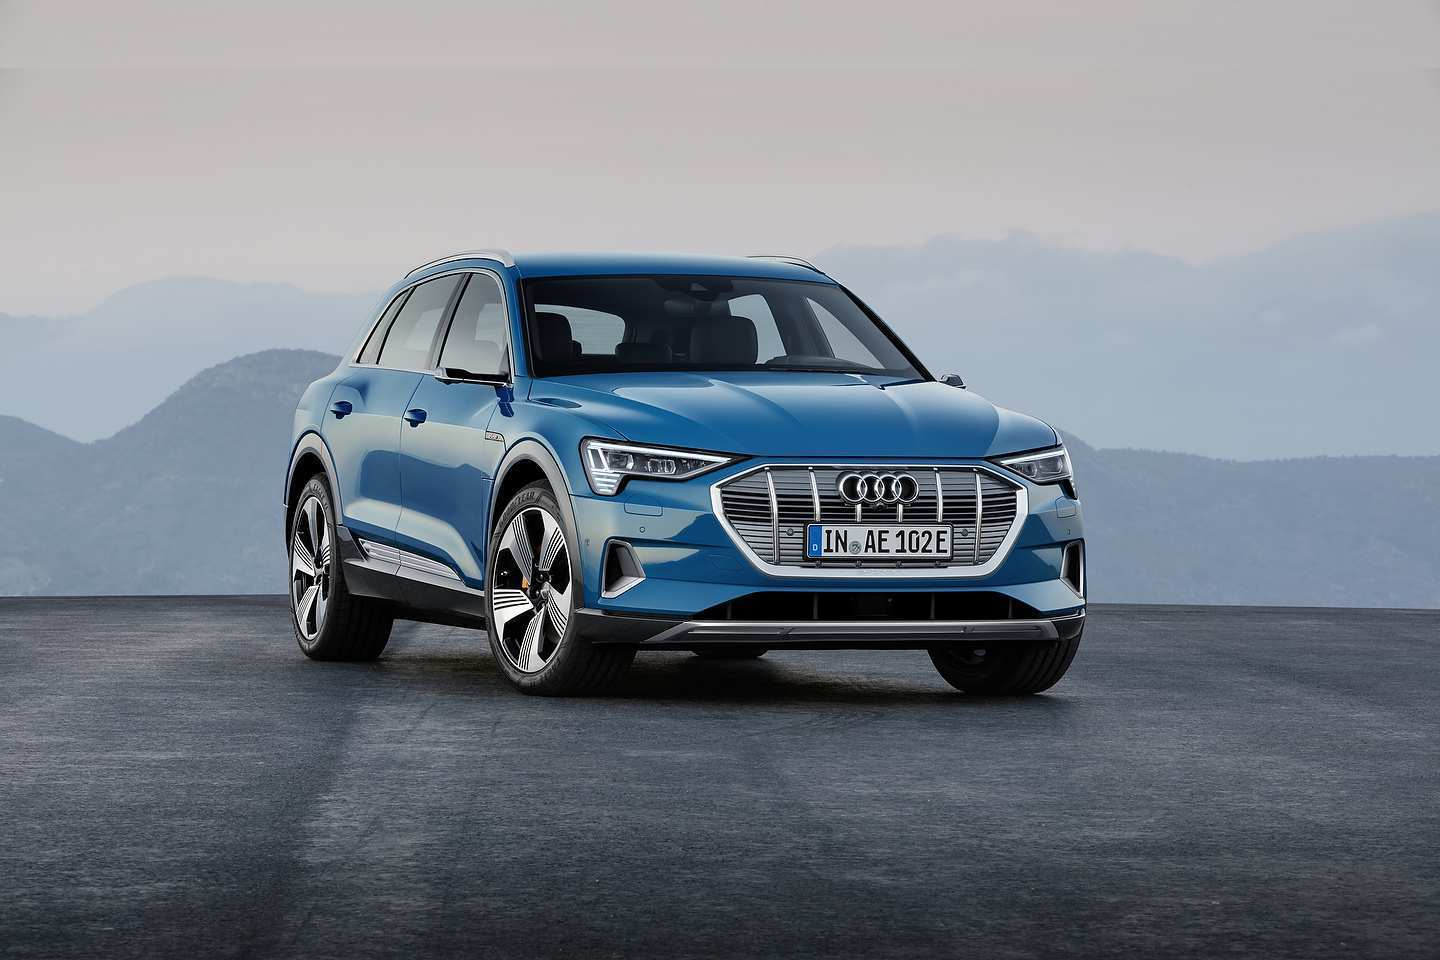 80 Best Review 2020 Audi E Tron Exterior and Interior for 2020 Audi E Tron